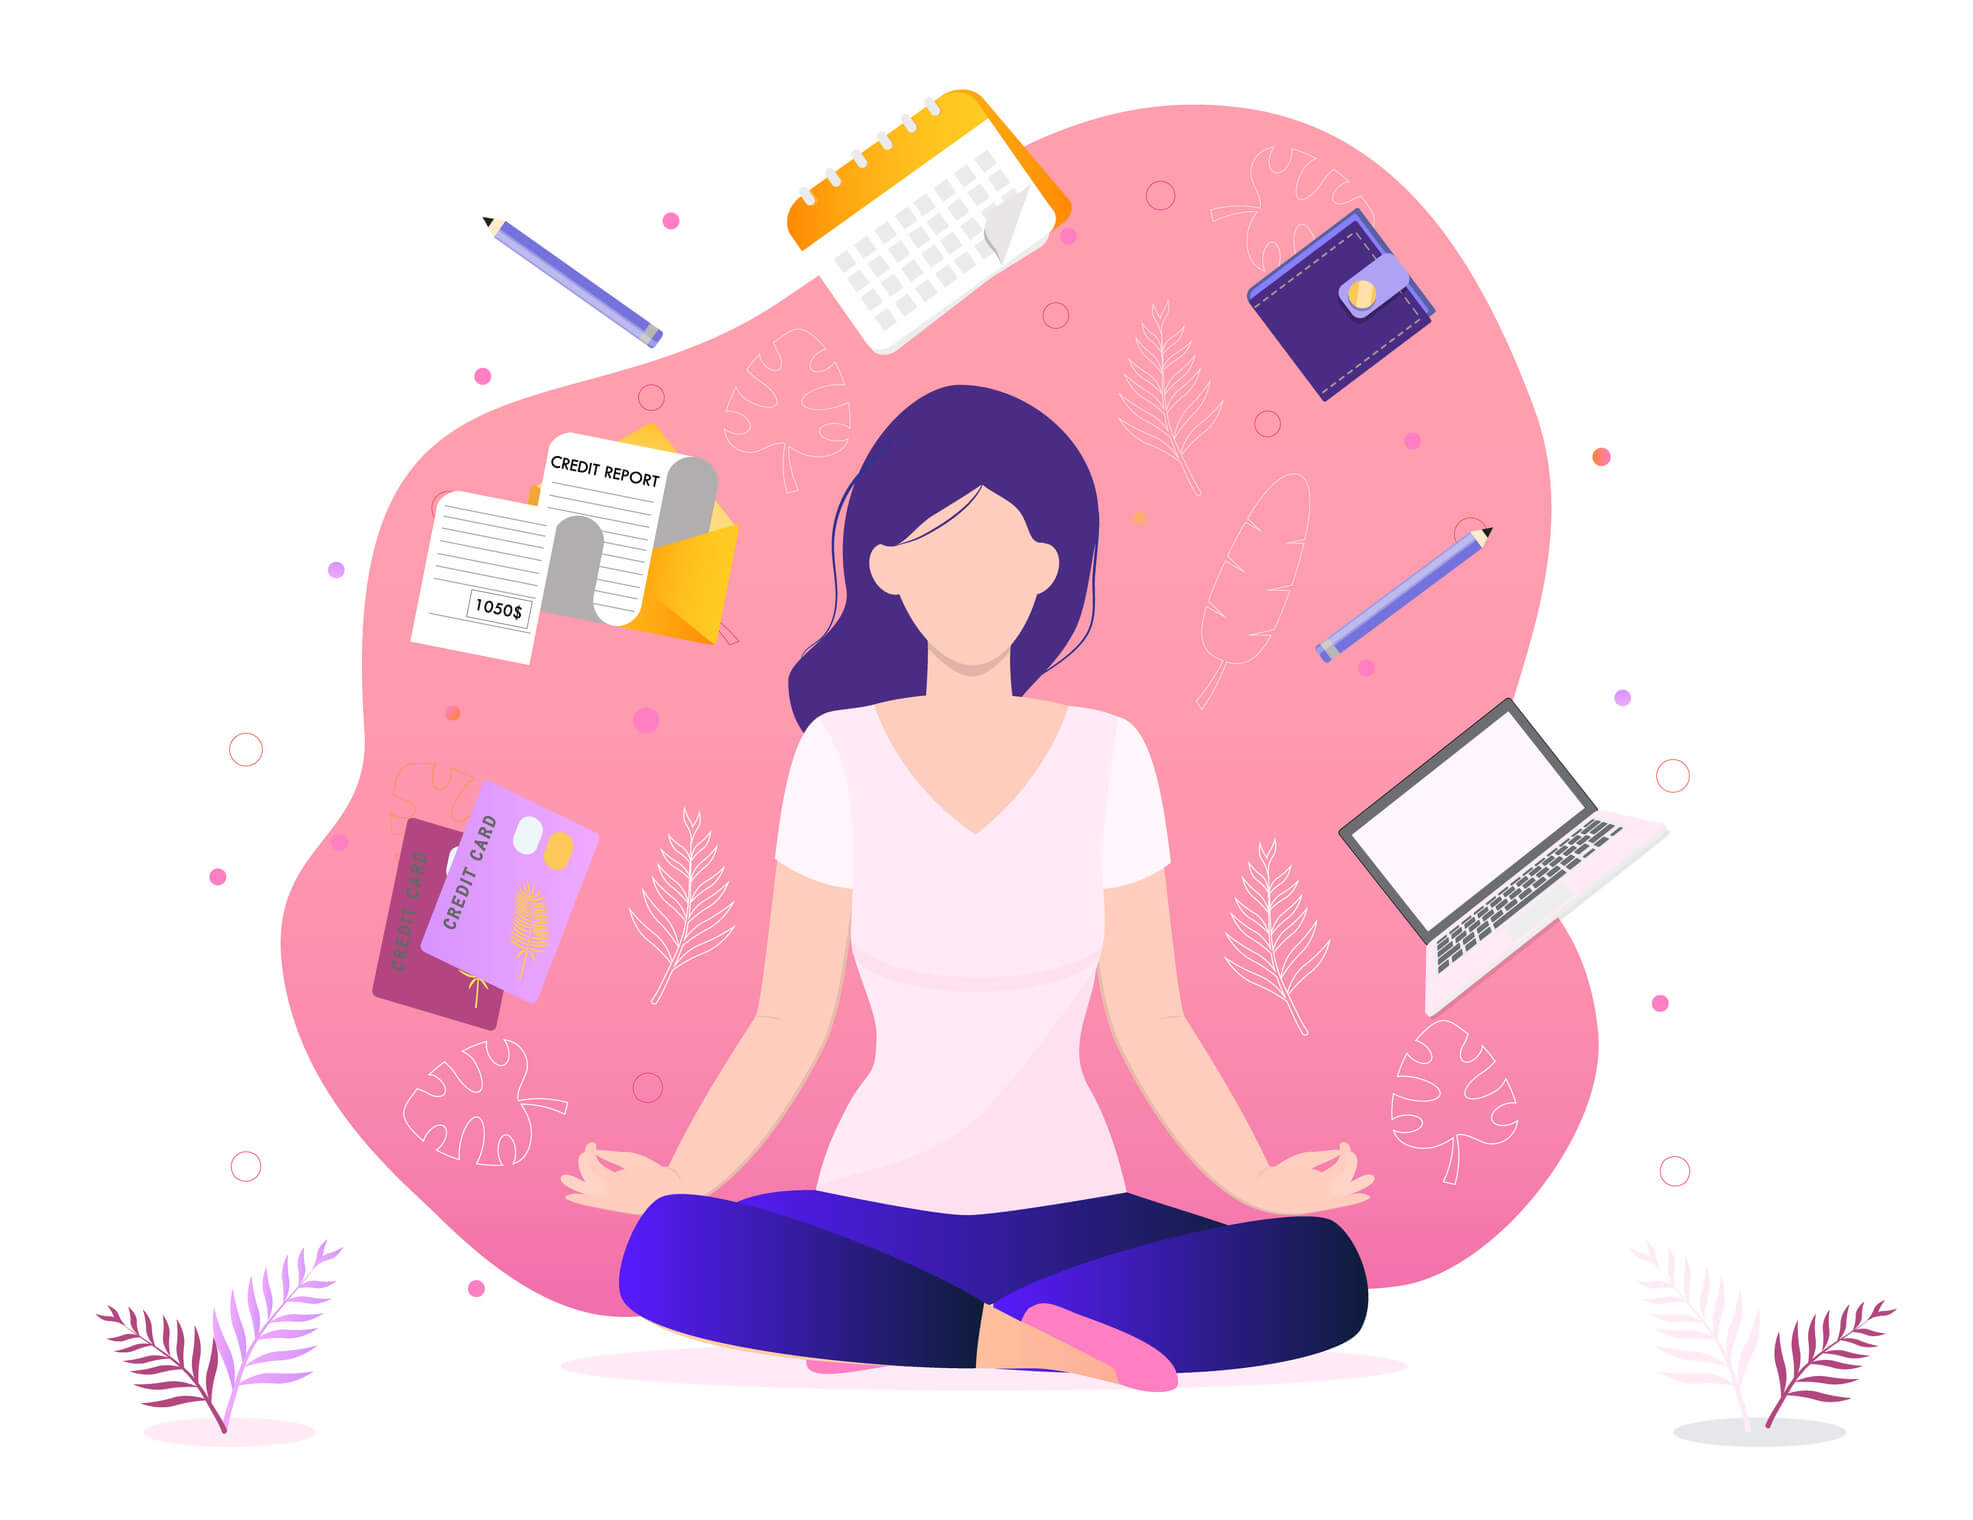 6 Ways to Practice Digital Wellness for Businesses cartoon drawing of a woman meditating with computer, calendar, pen, and checklist surrounding her